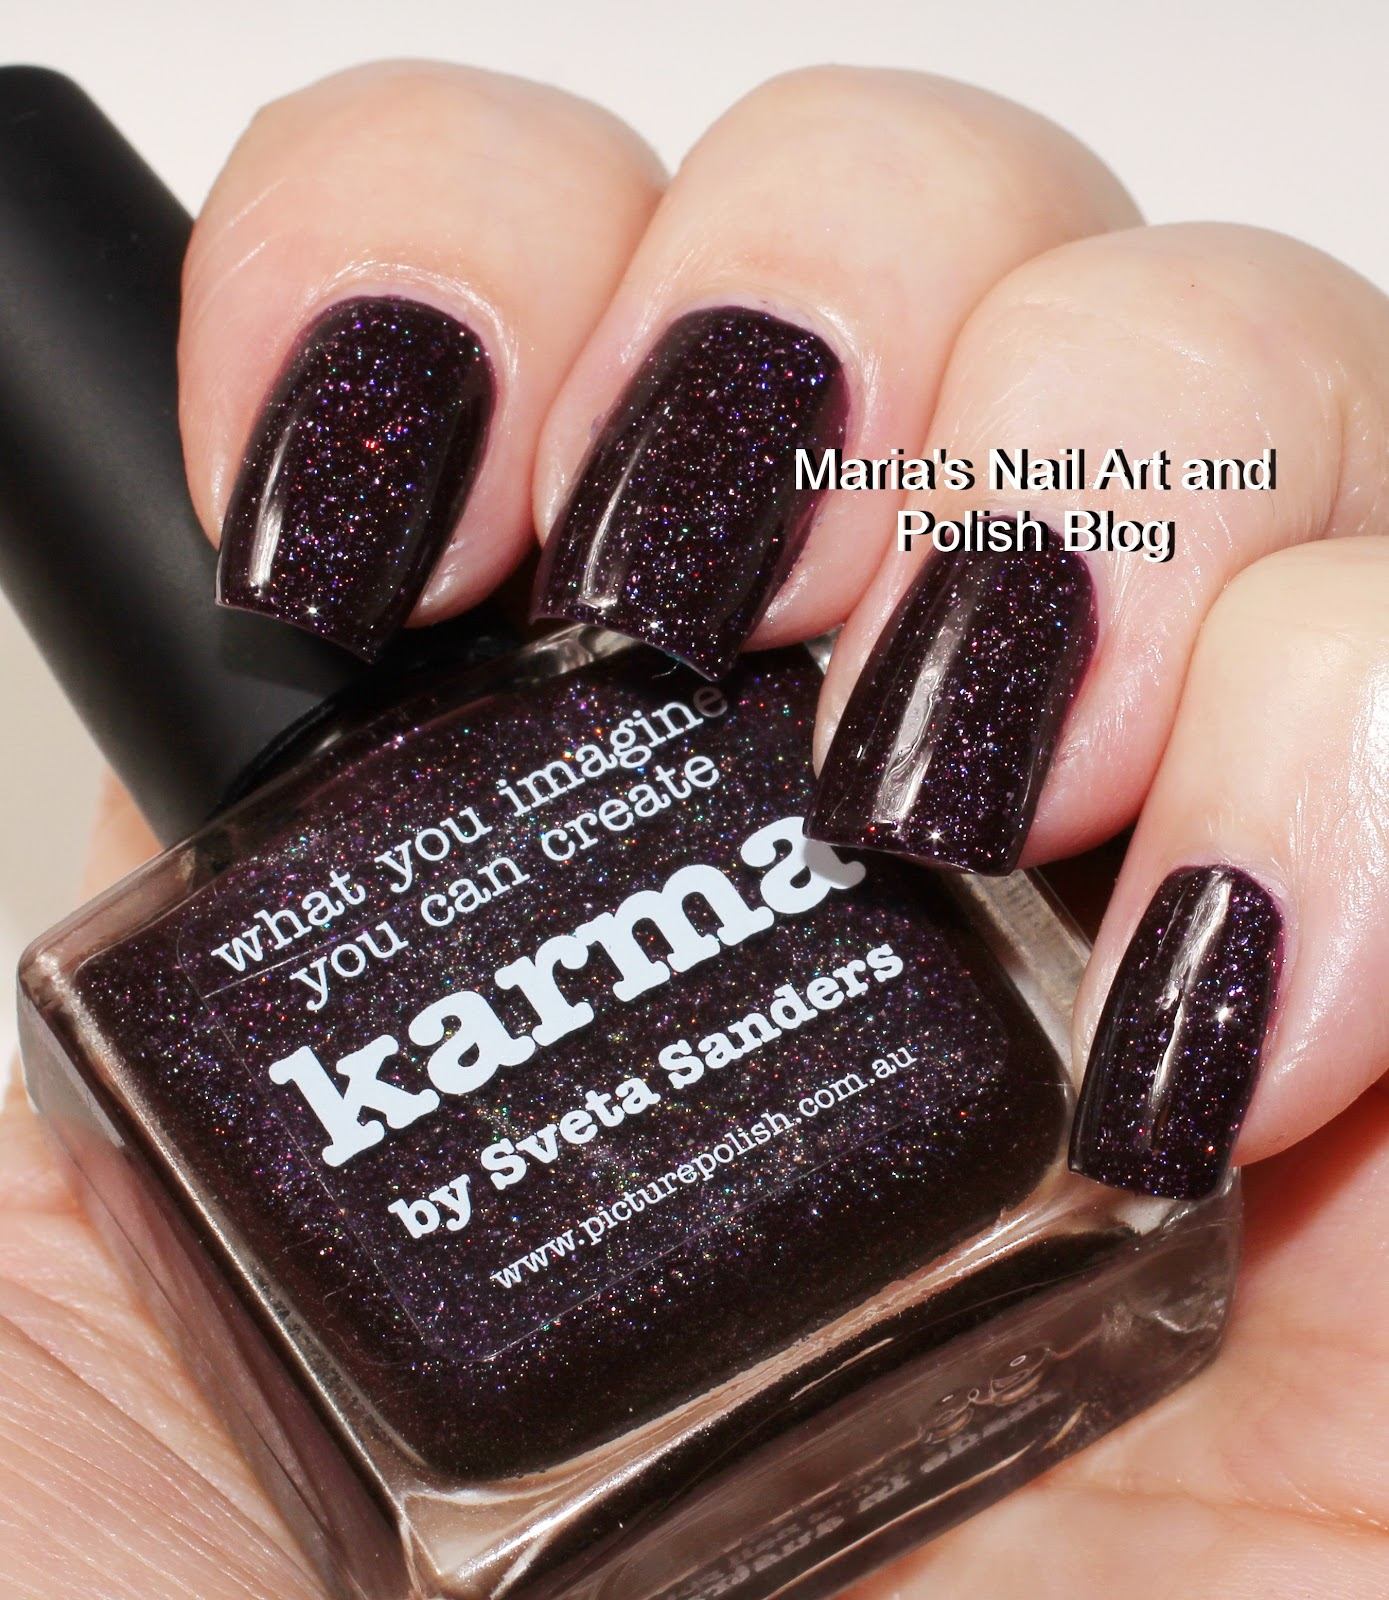 Marias Nail Art and Polish Blog: Picture Polish Karma swatches